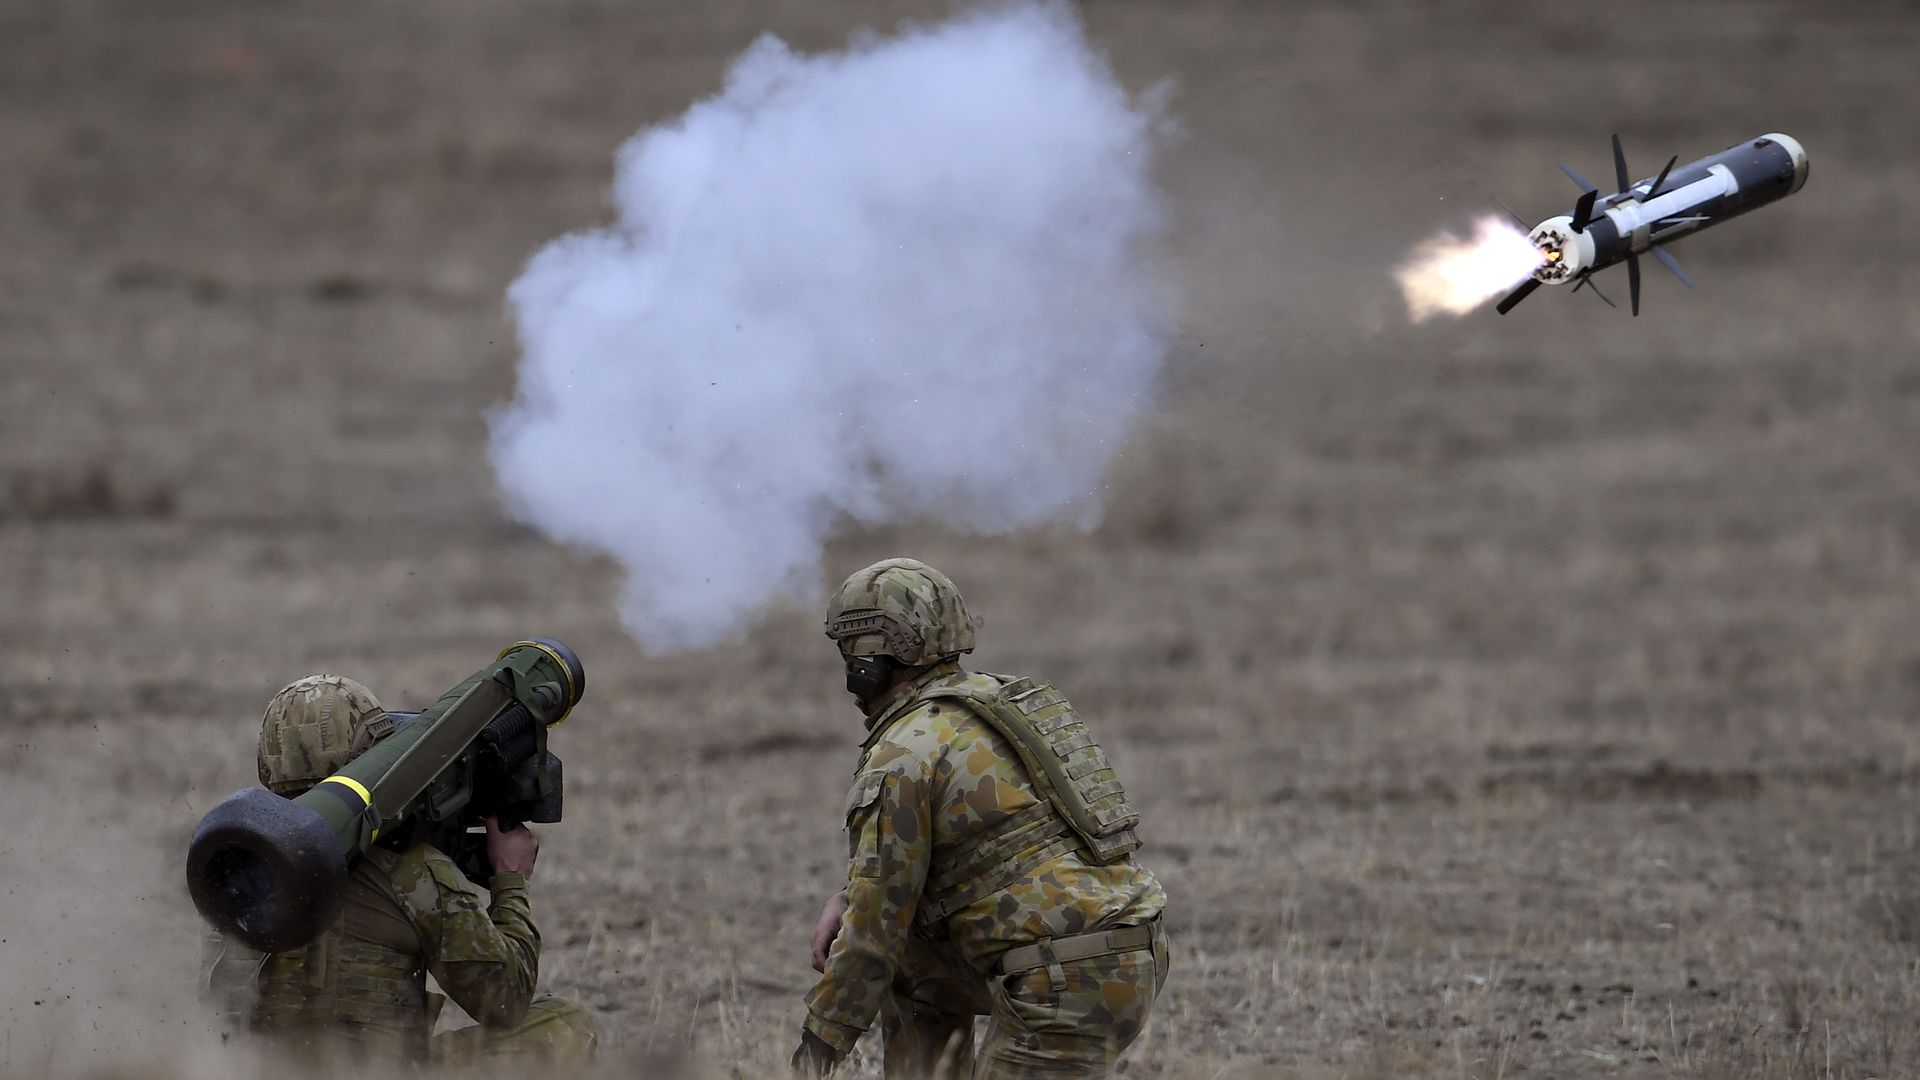 Australian Army soldiers fire a Javelin anti-tank missile during Excercise Chong Ju at the Puckapunyal Military Base some 100 kilometres north of Melbourne on May 9